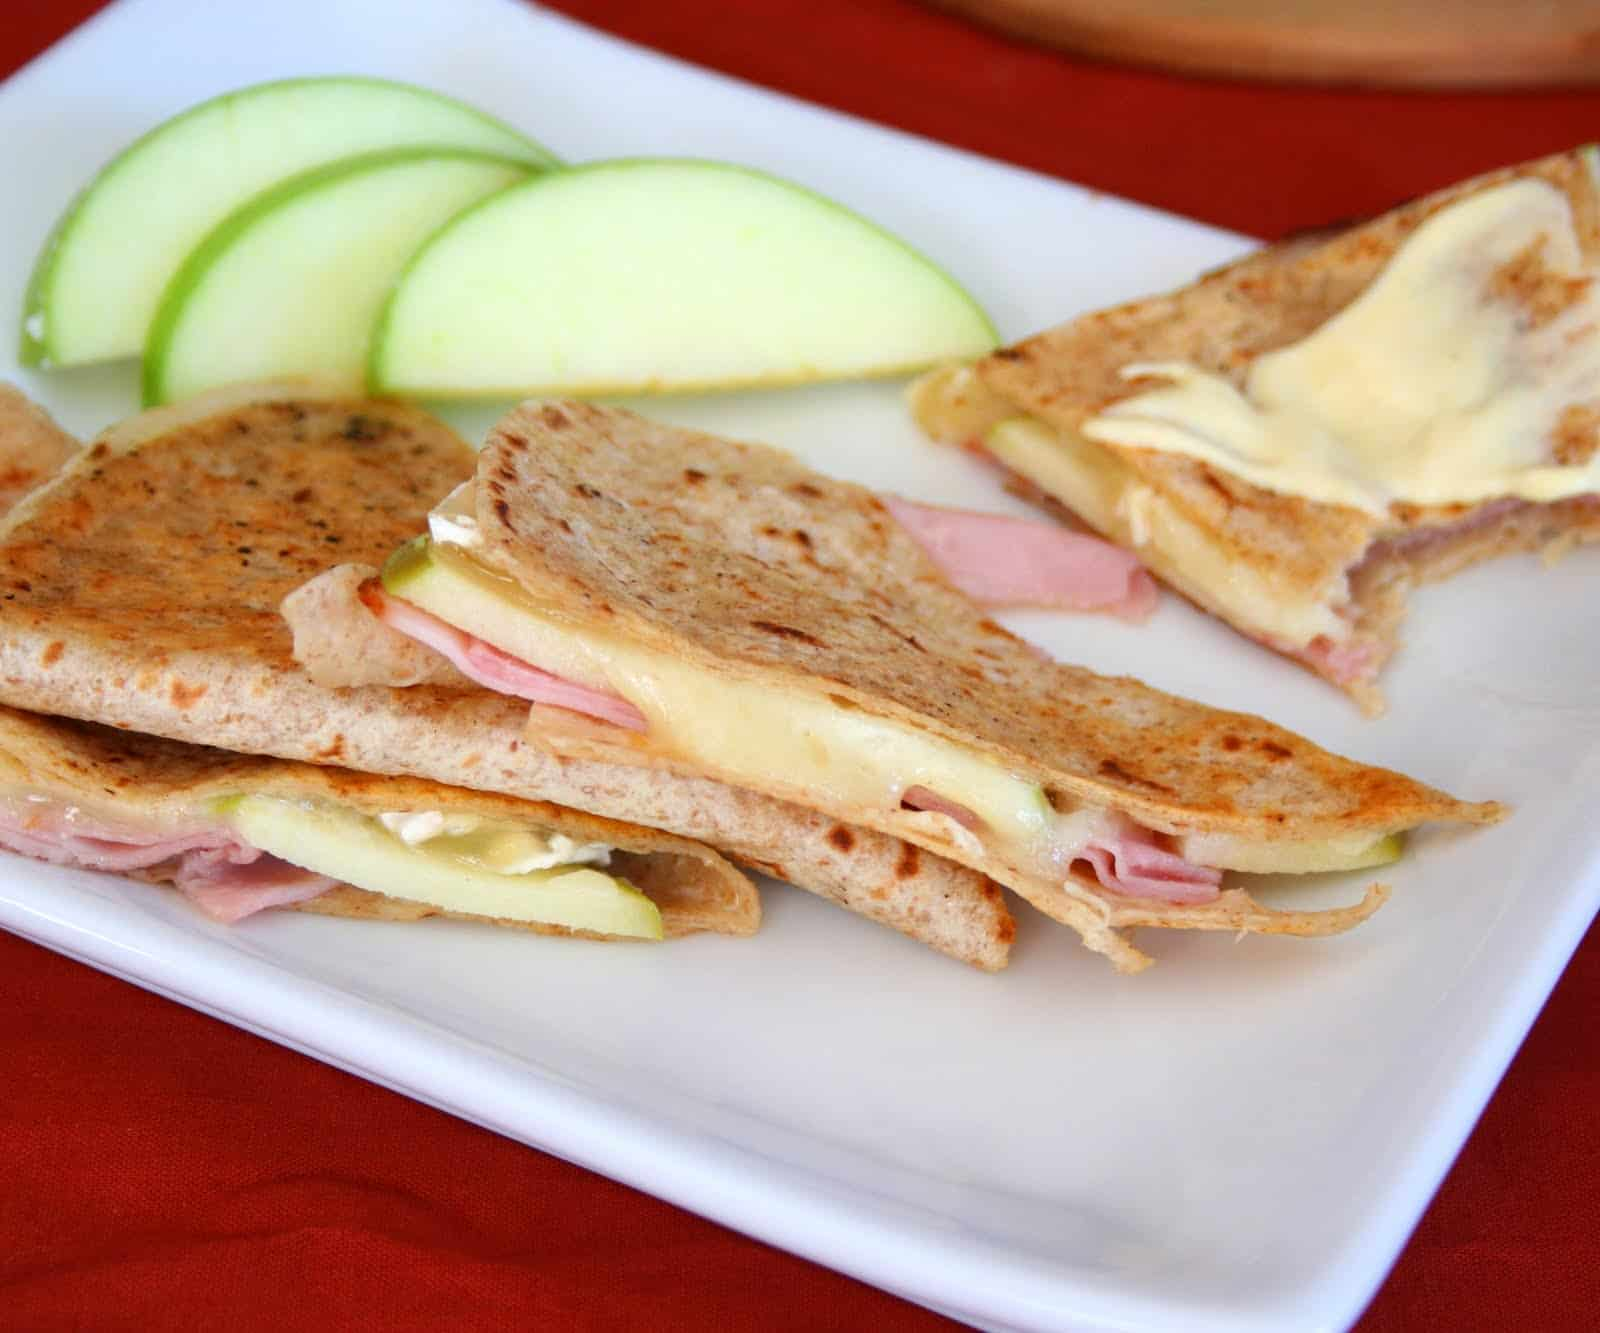 Panini press ham, apple, and brie quesedillas